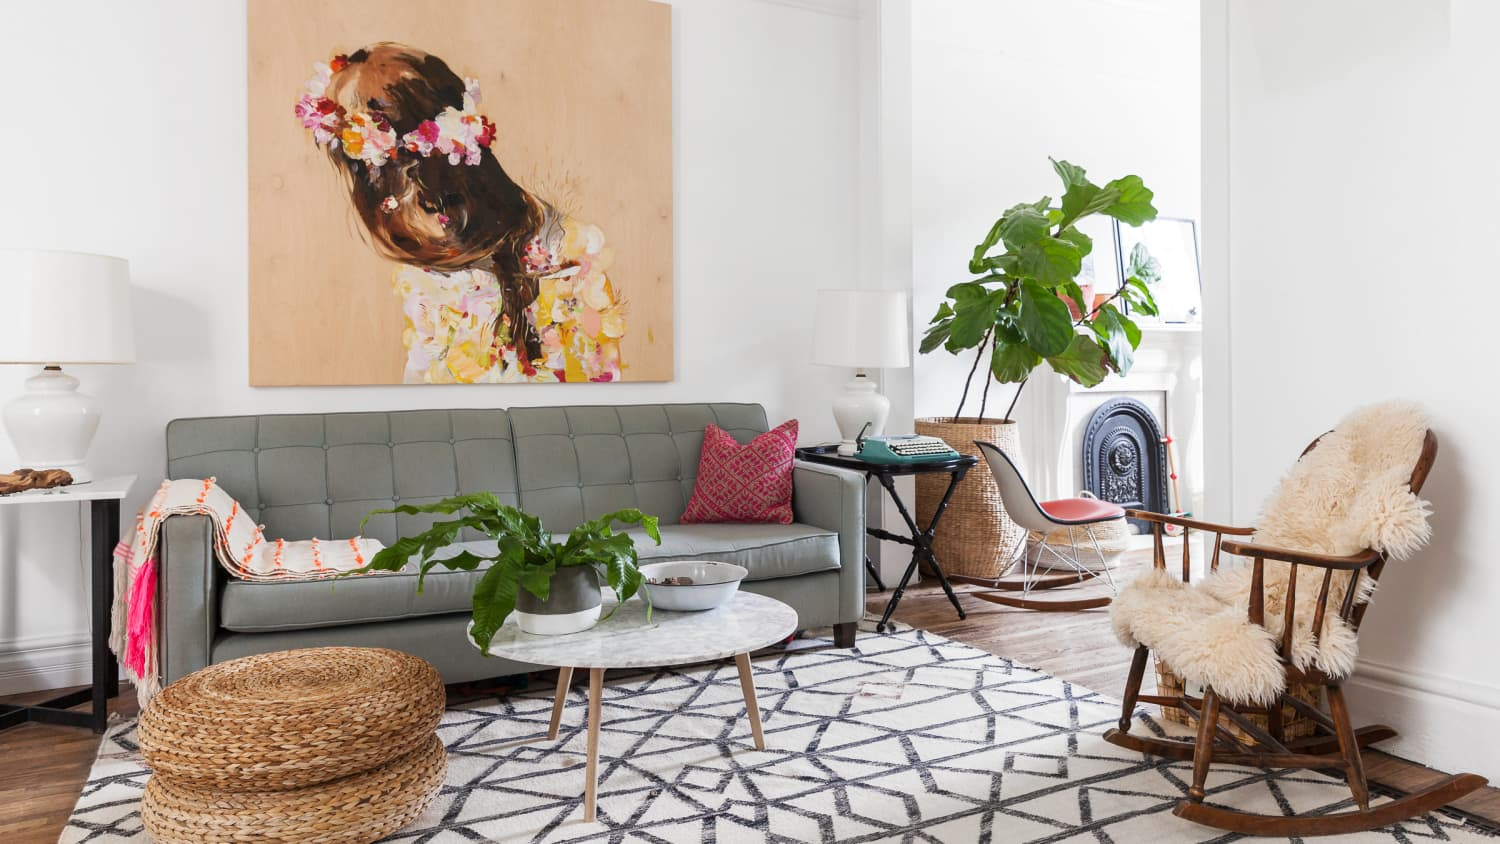 Floor Seating Ideas: Cushions, Poufs, And Pillows | Apartment Therapy